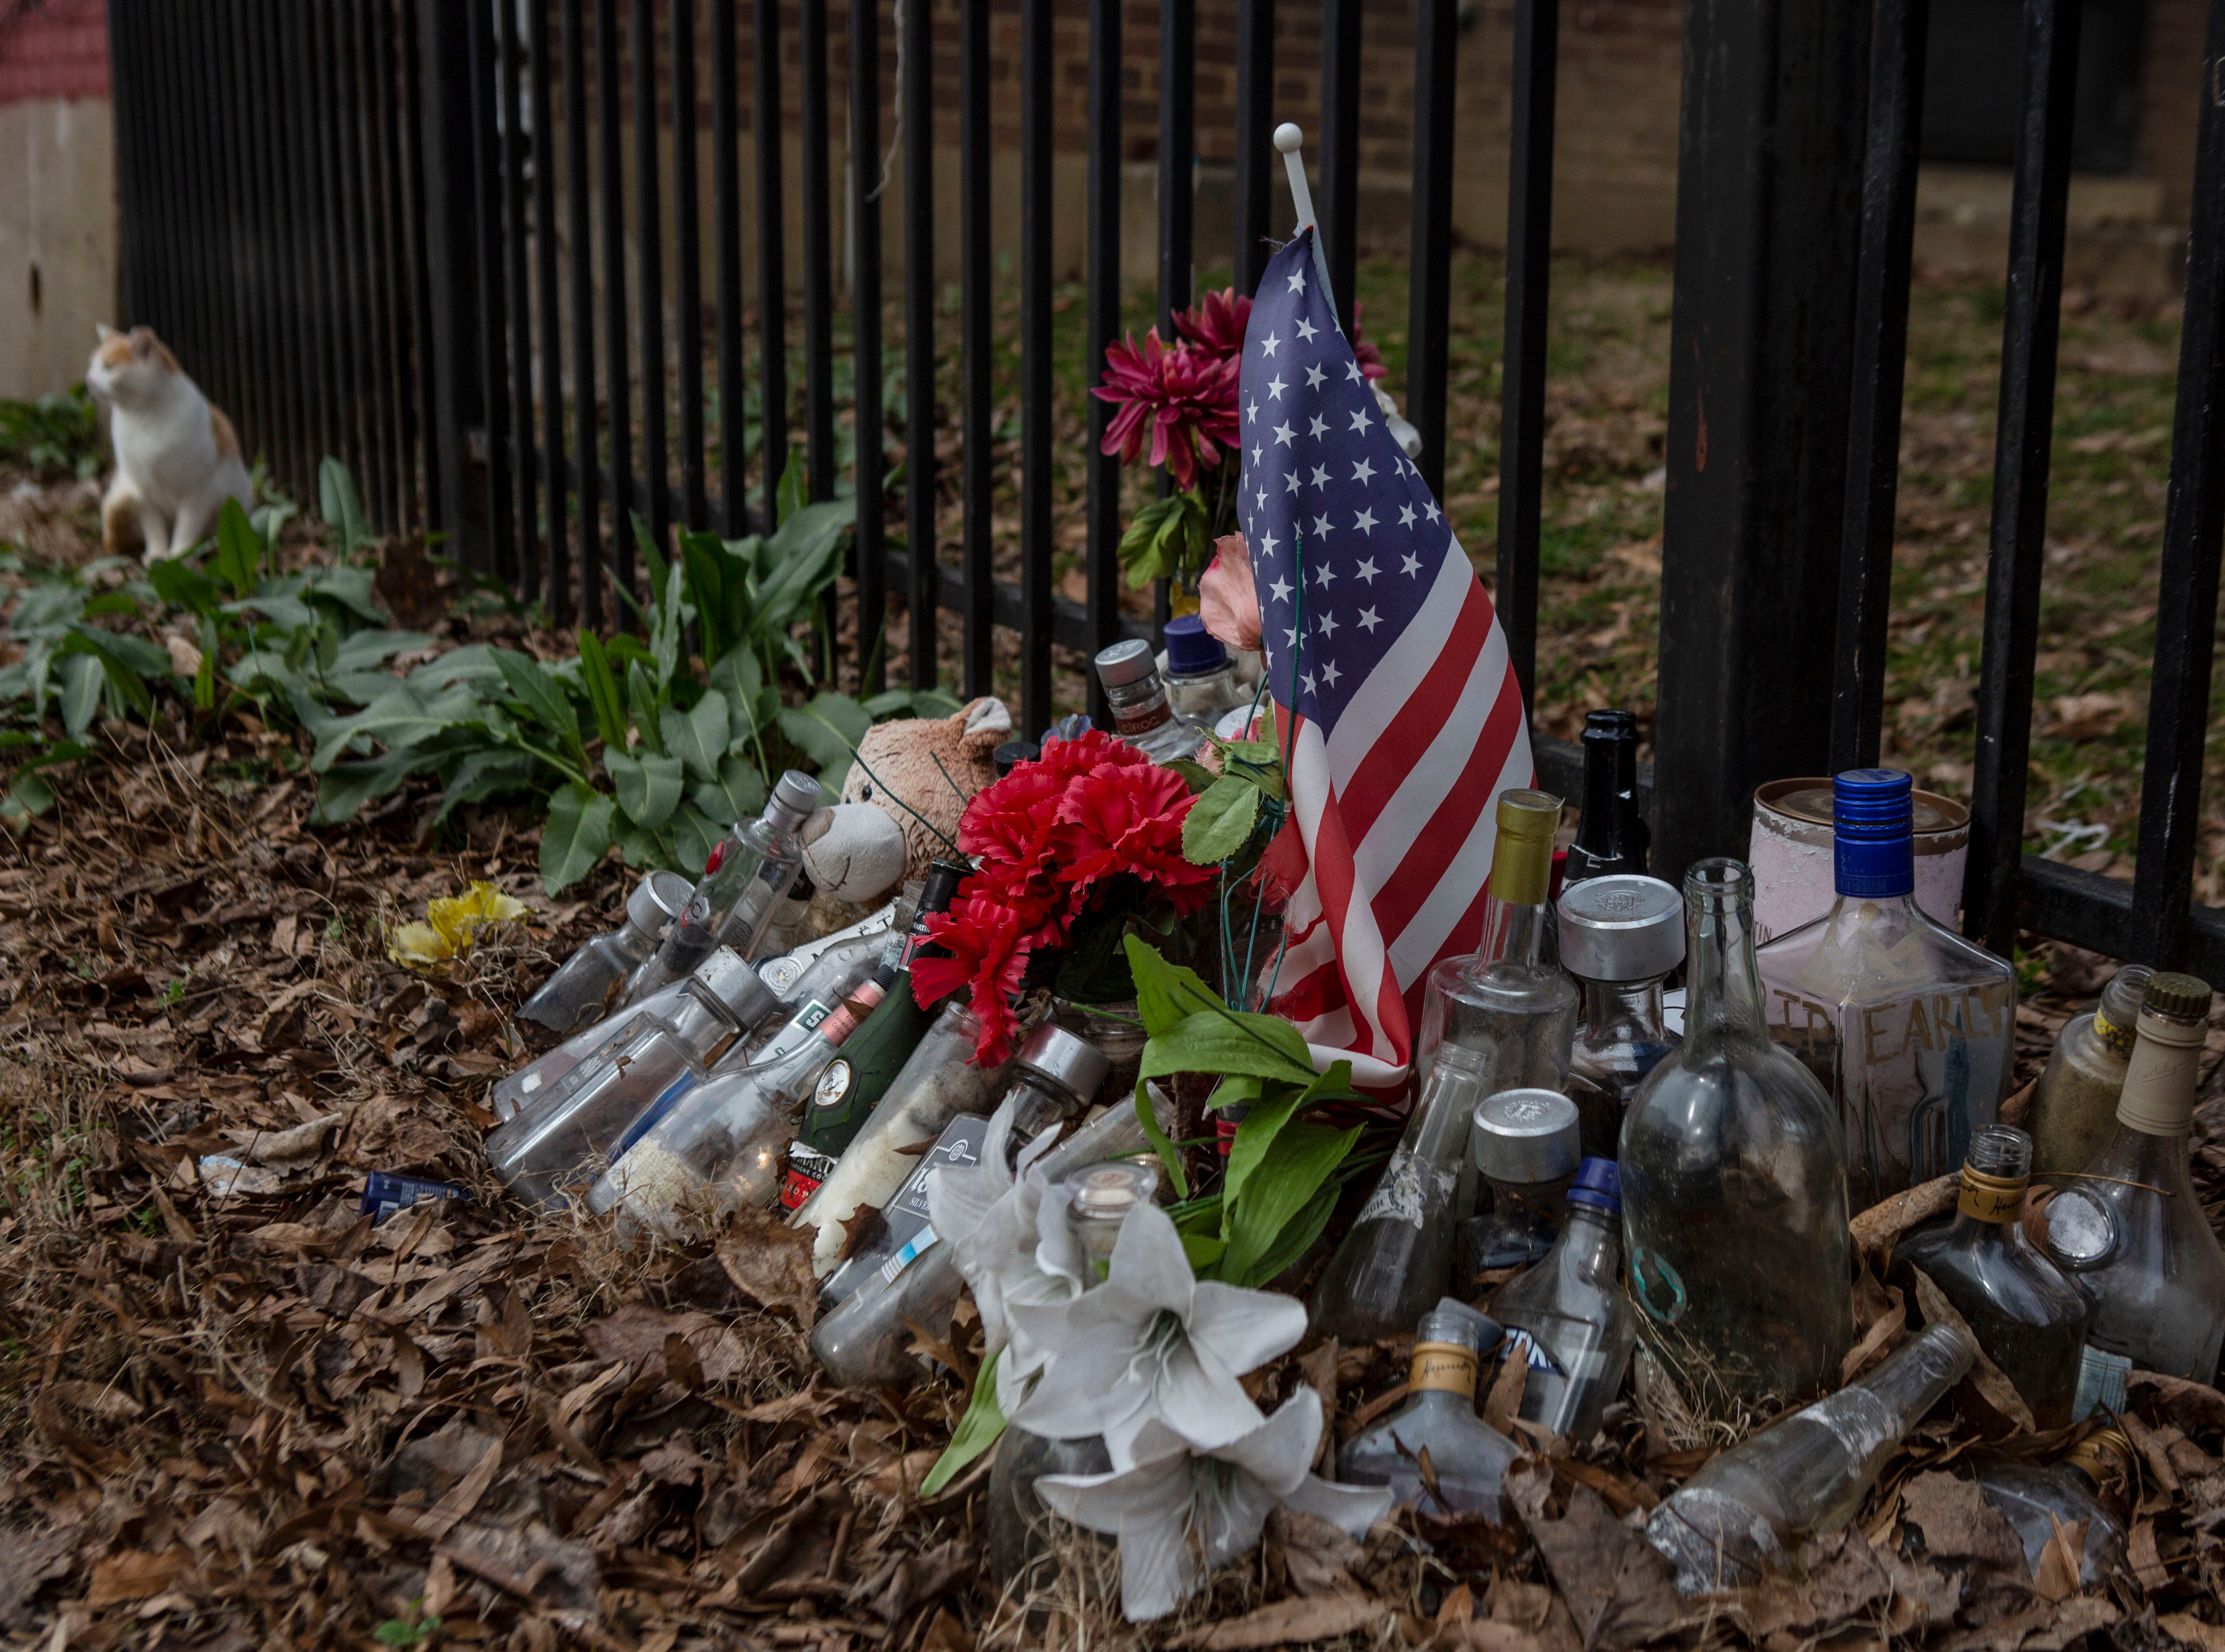 A shrine for Wilson Burton, 27, who was shot to death in the Beecher Terrace housing project in December 2016. Burton was found lying on the sidewalk in the afternoon.  Jan. 11, 2019